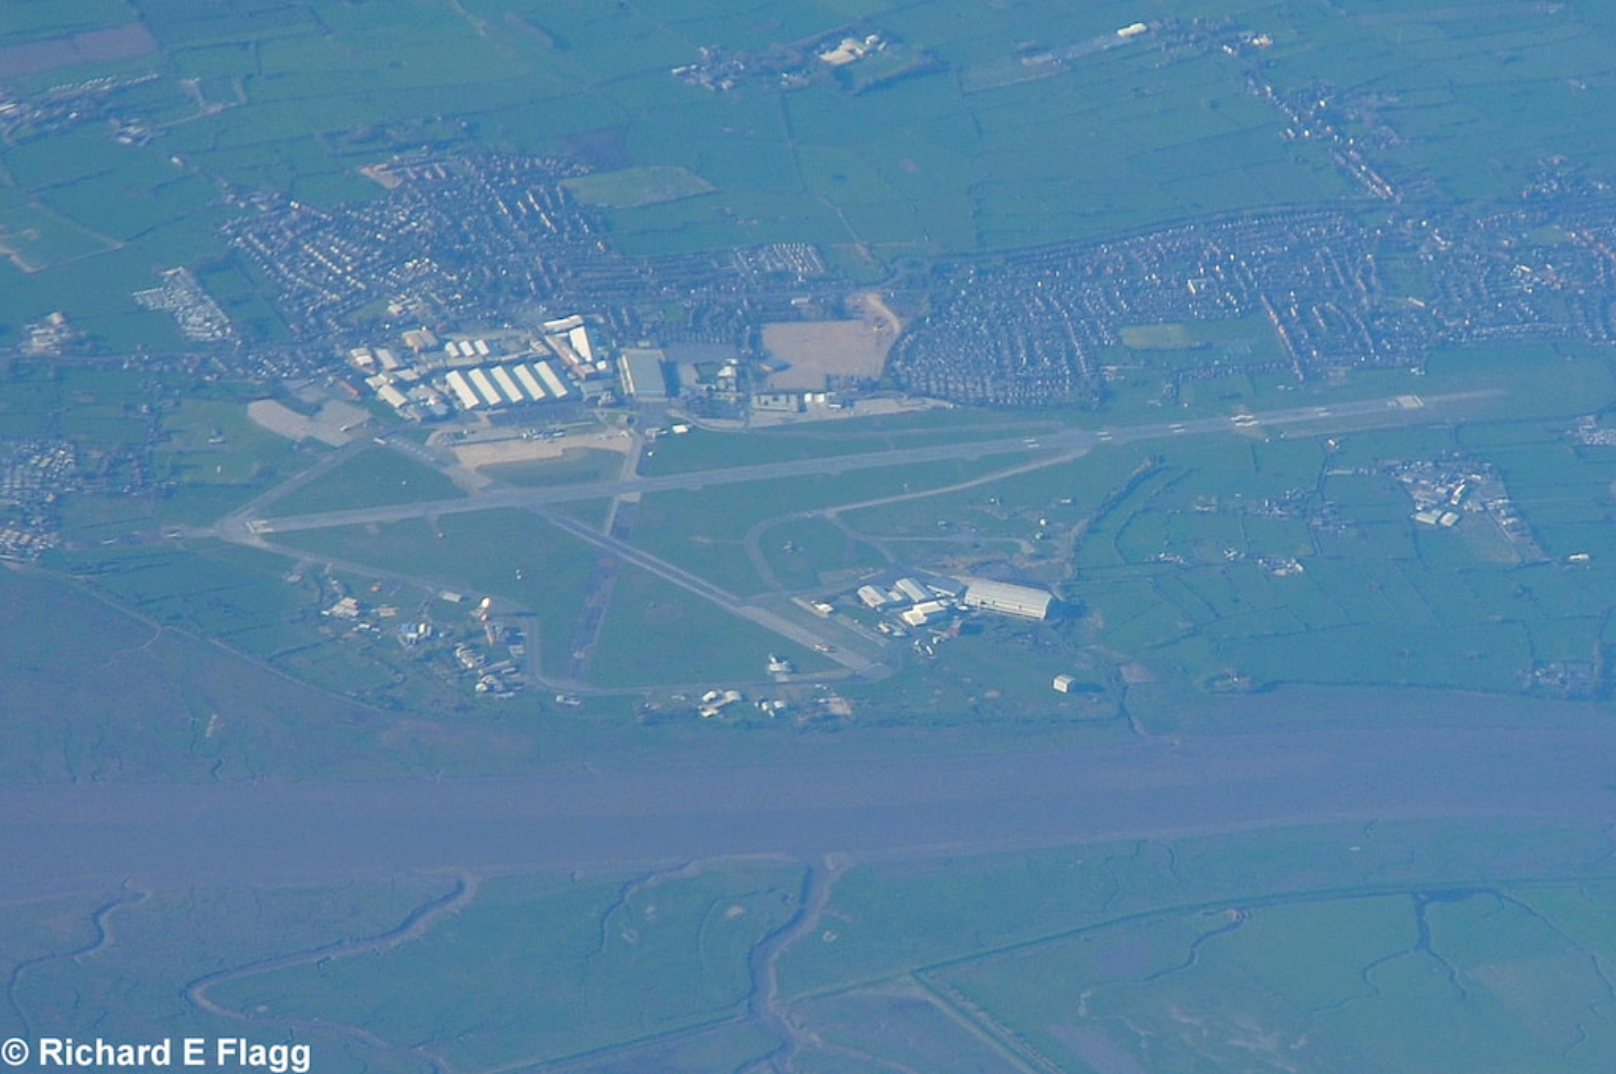 002Aerial View 2 of Warton Airfield - 18 April 2014.png